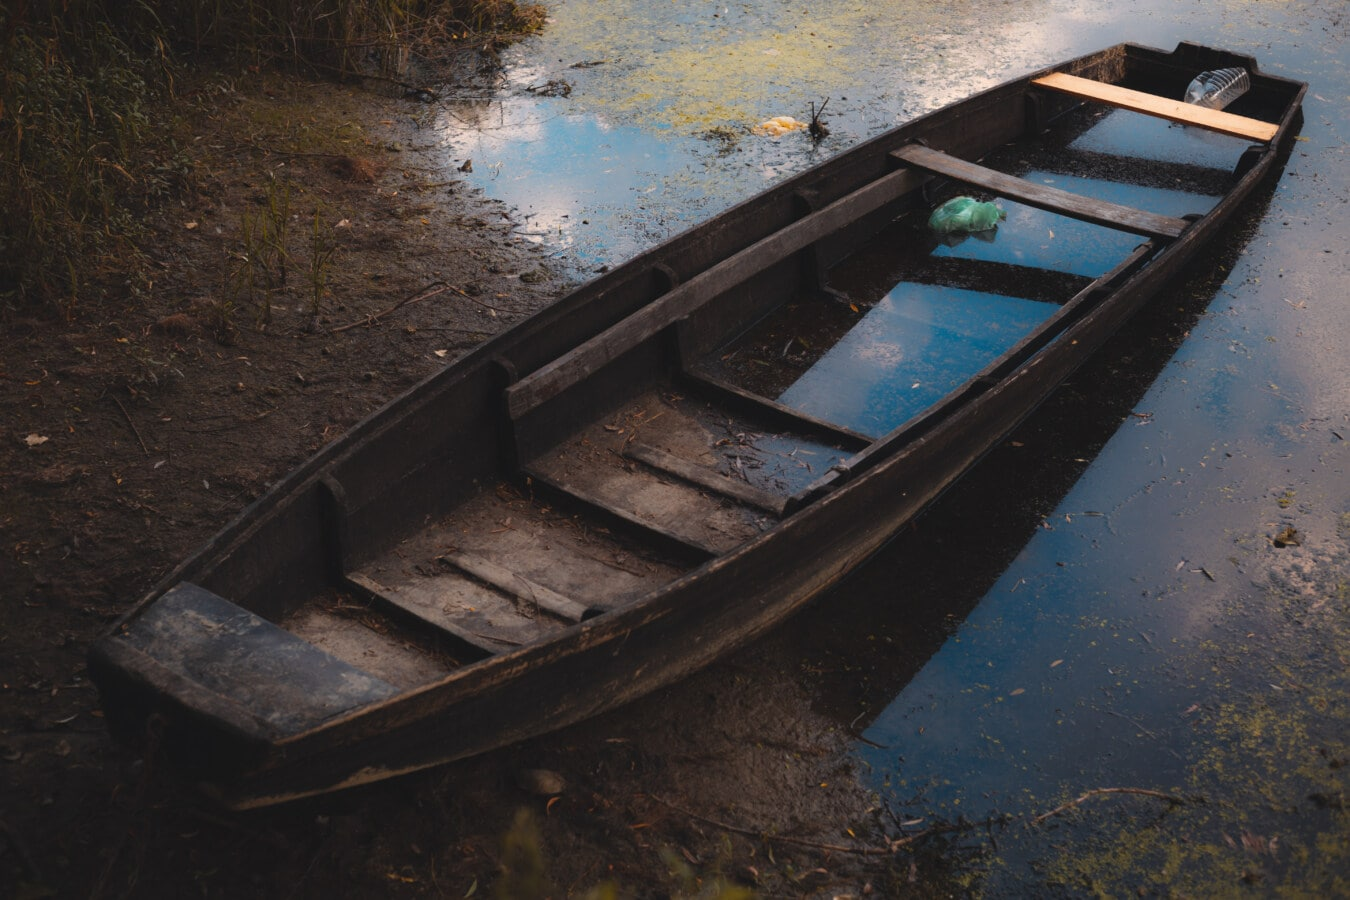 fishing boat, wooden, abandoned, old, flood, water, boat, river, watercraft, beach